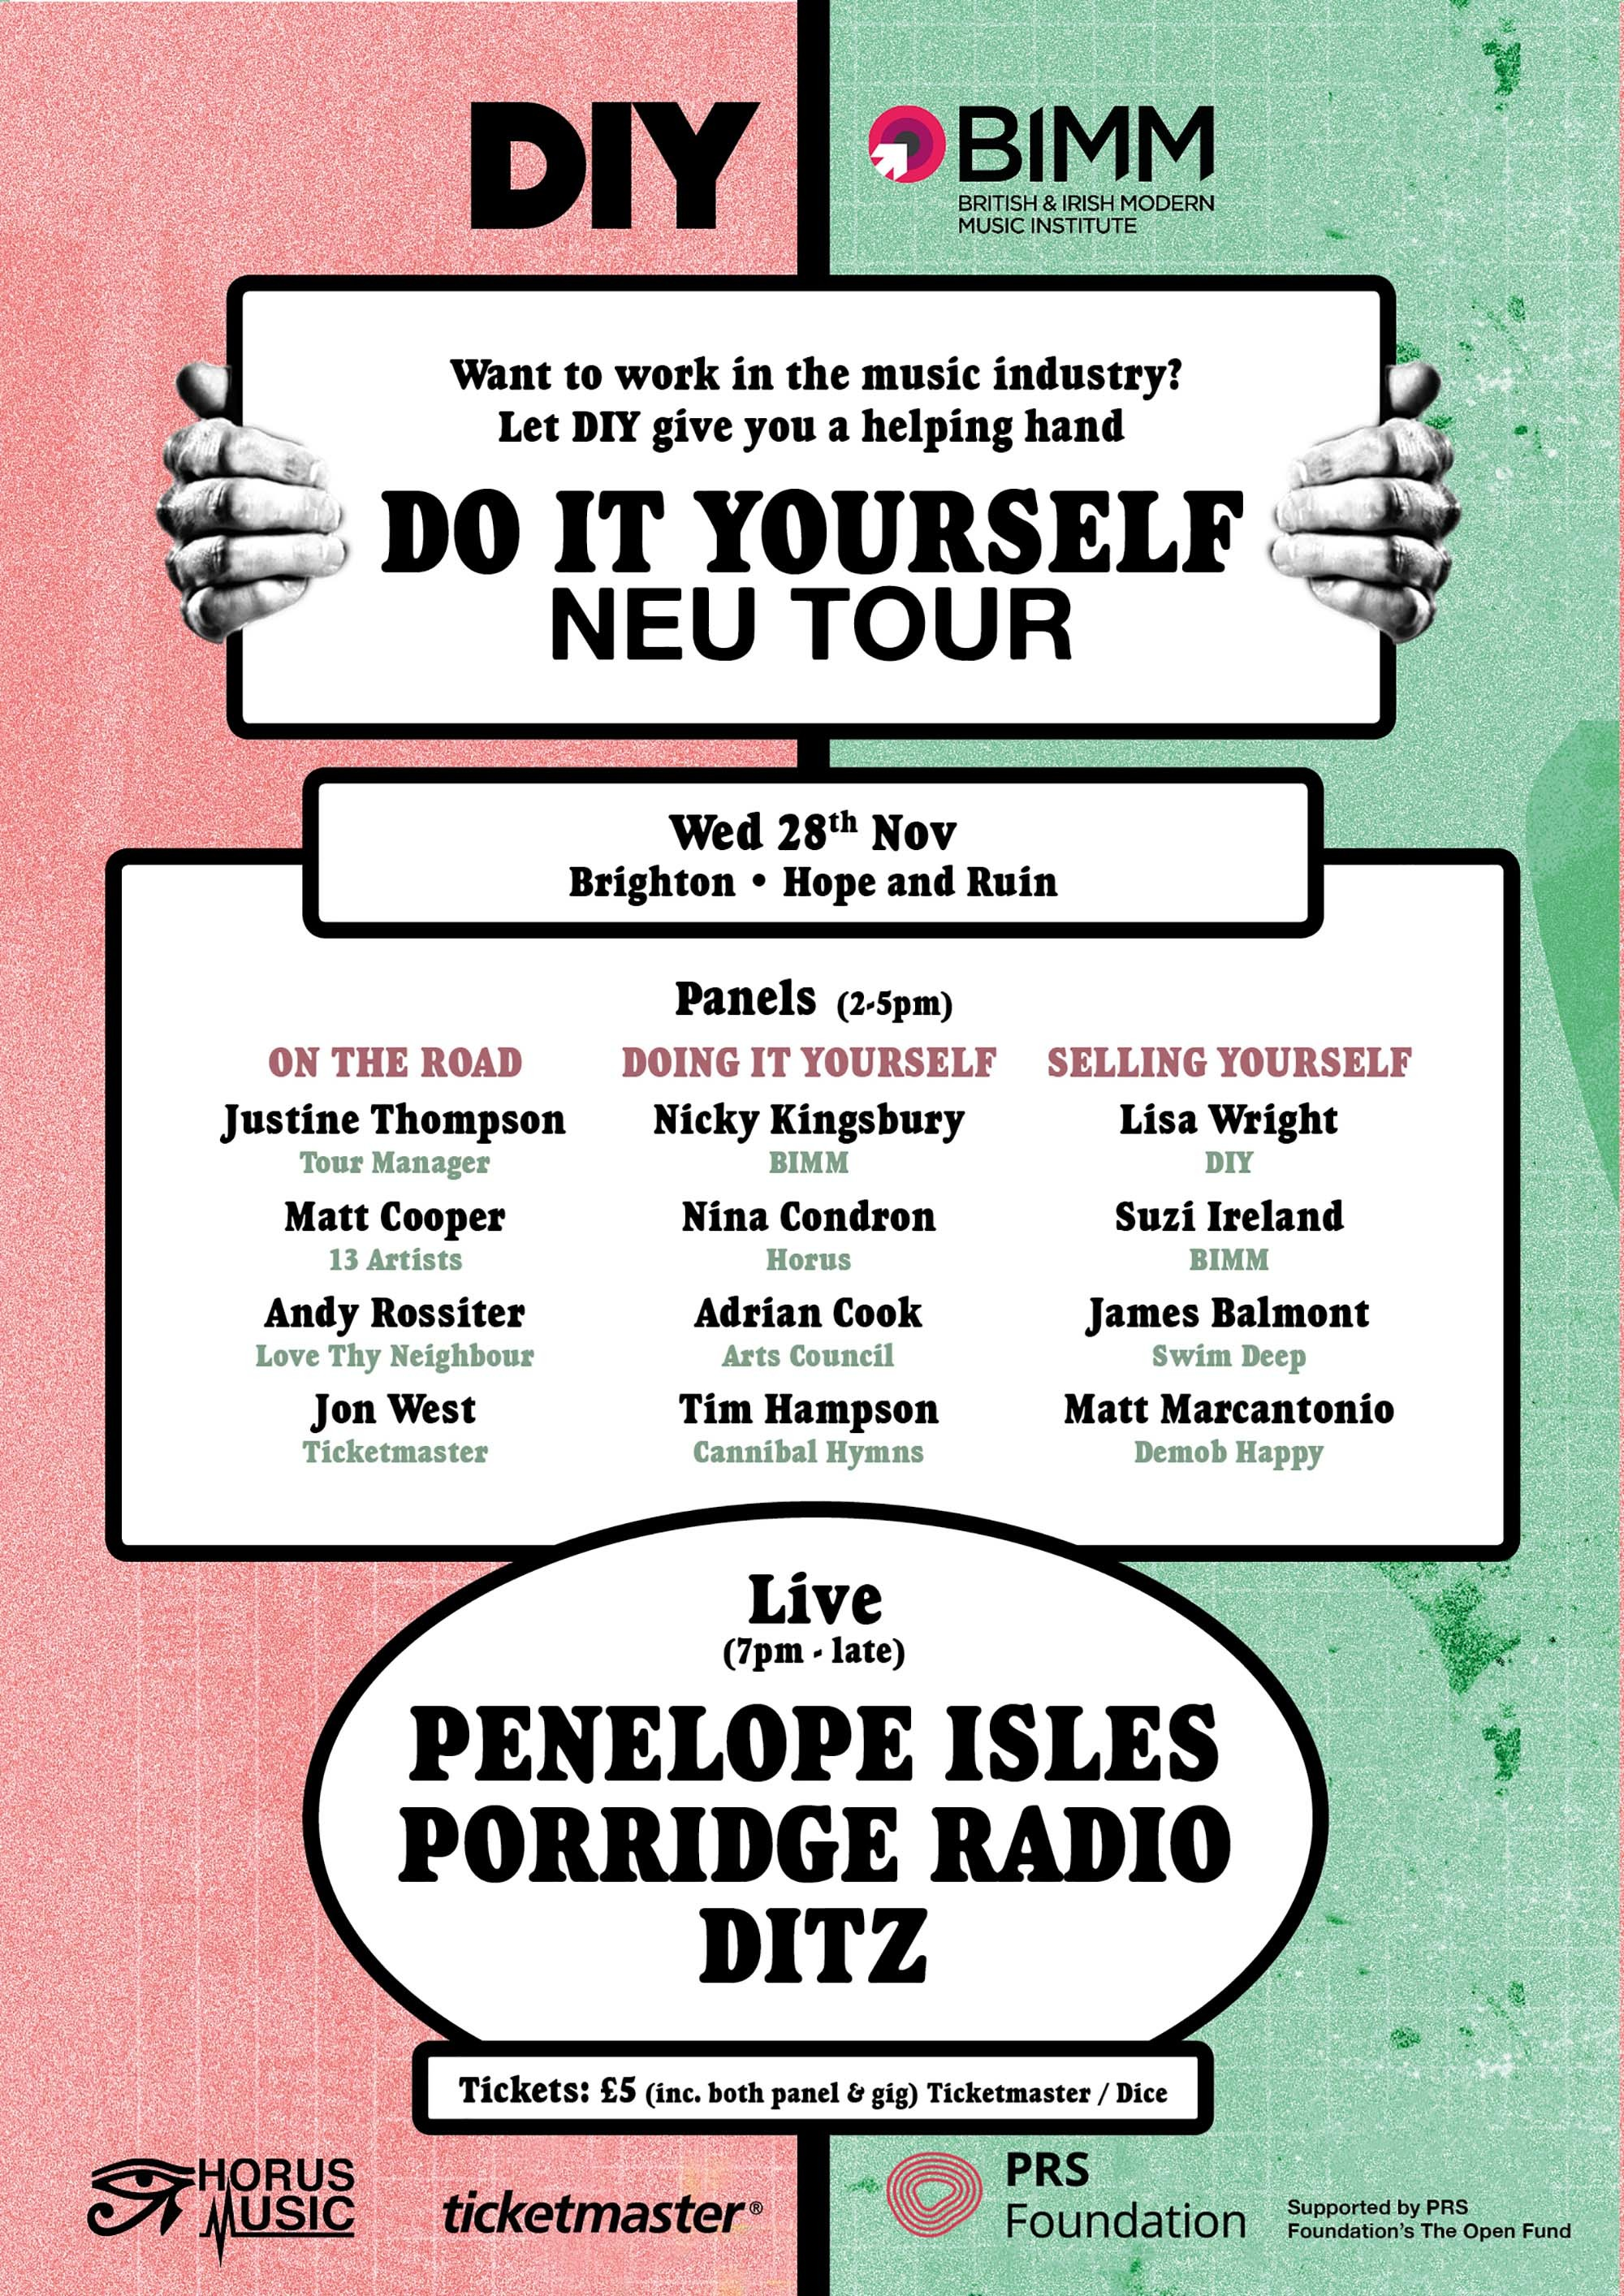 Peace, Pulled Apart by Horses, Dirty Hit, Live at Leeds and lots more to speak at DIY's Do It Yourself Neu Tour!